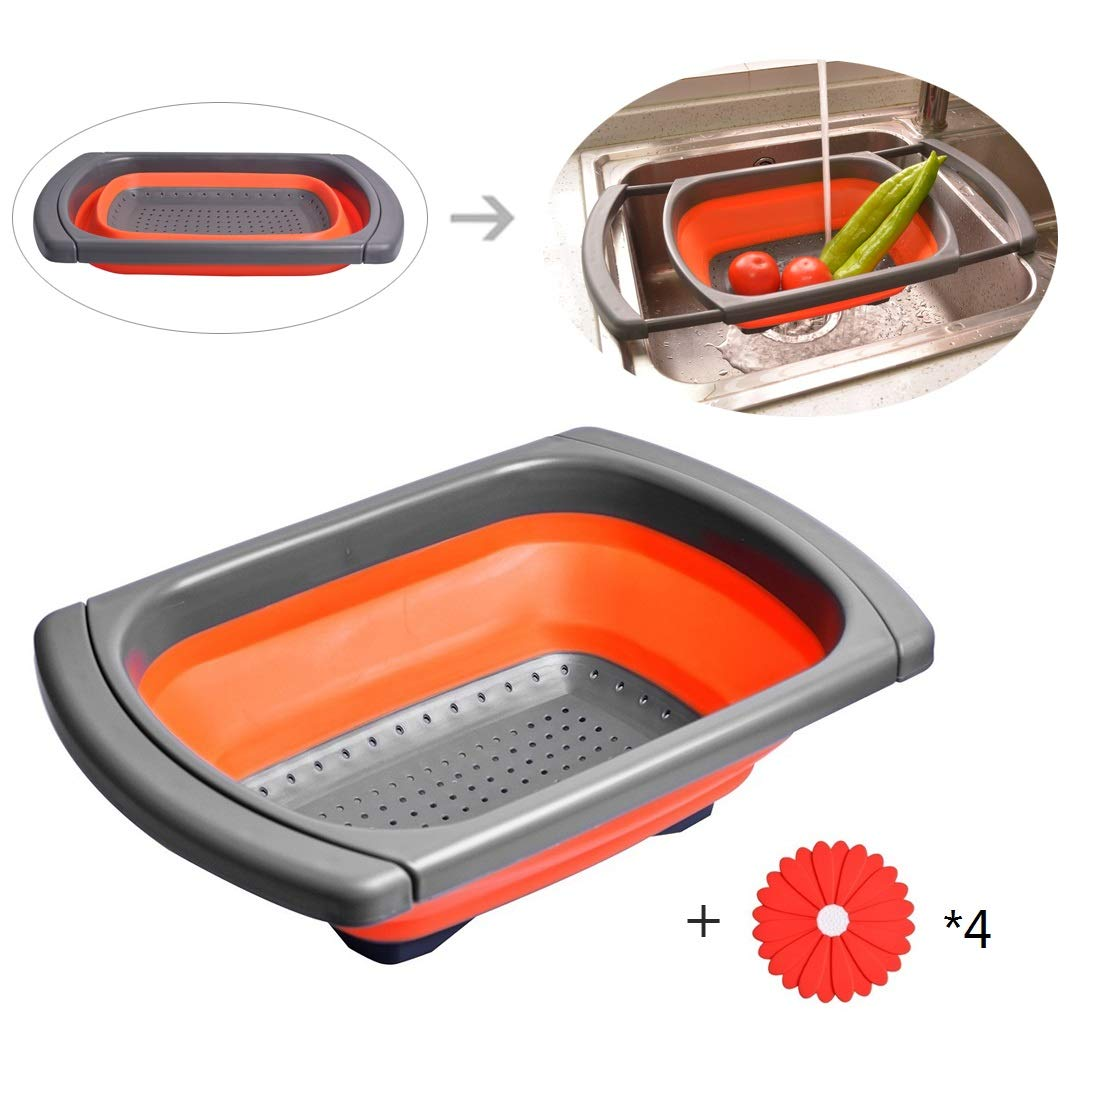 Ouchan Collapsible Colander Over the Sink Colander with Extendable Handles - Collapsible Strainer with Free Bonus Clip on Silicone Strainer for Kitchen (1, Grey & Orange)